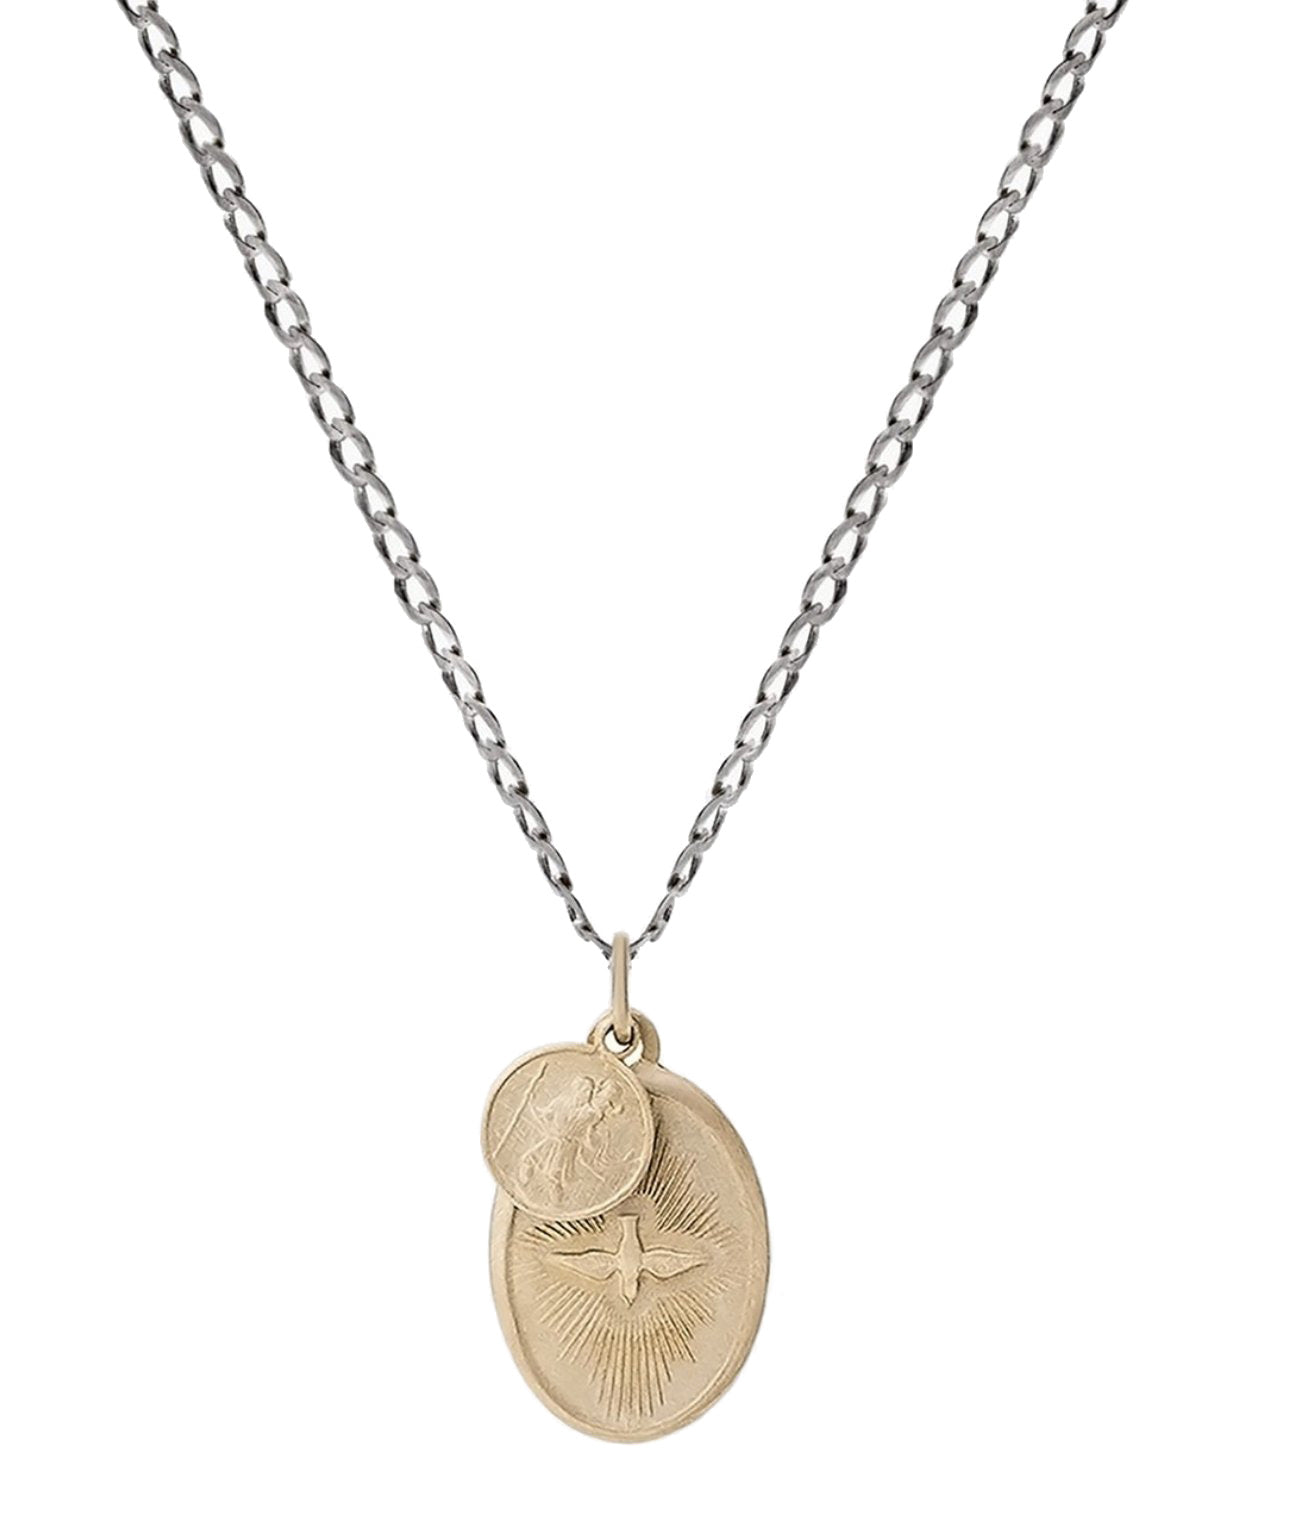 Dove Pendant Necklace Gold on Silver